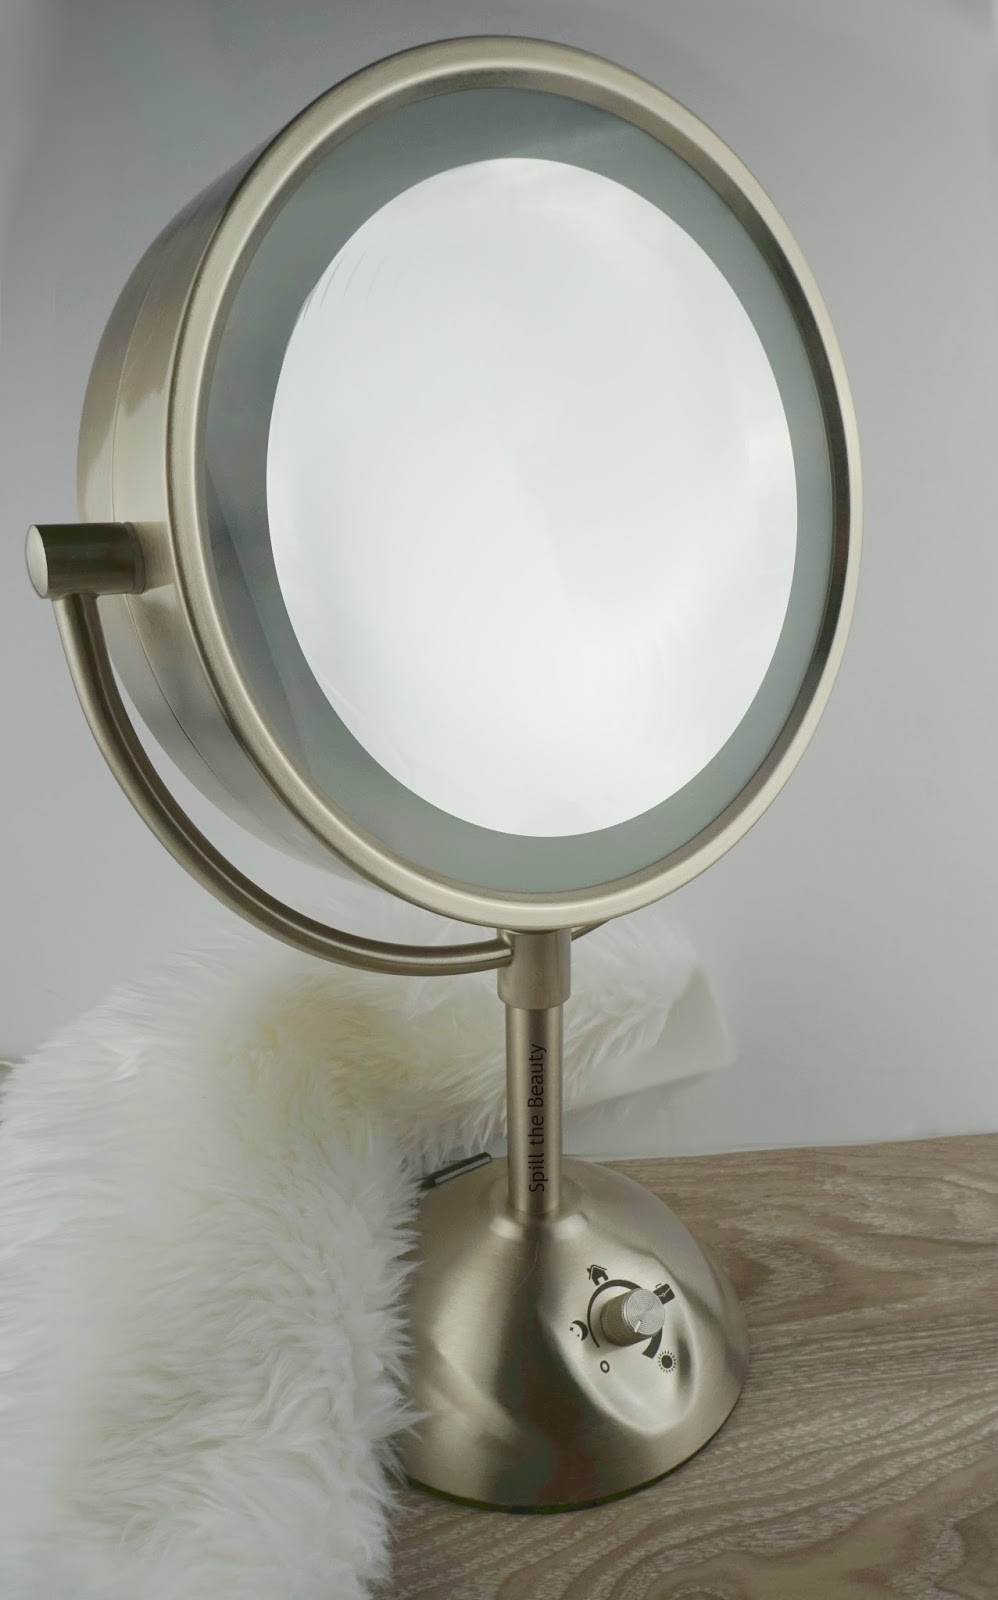 Conair True Glow Magnifying Mirror